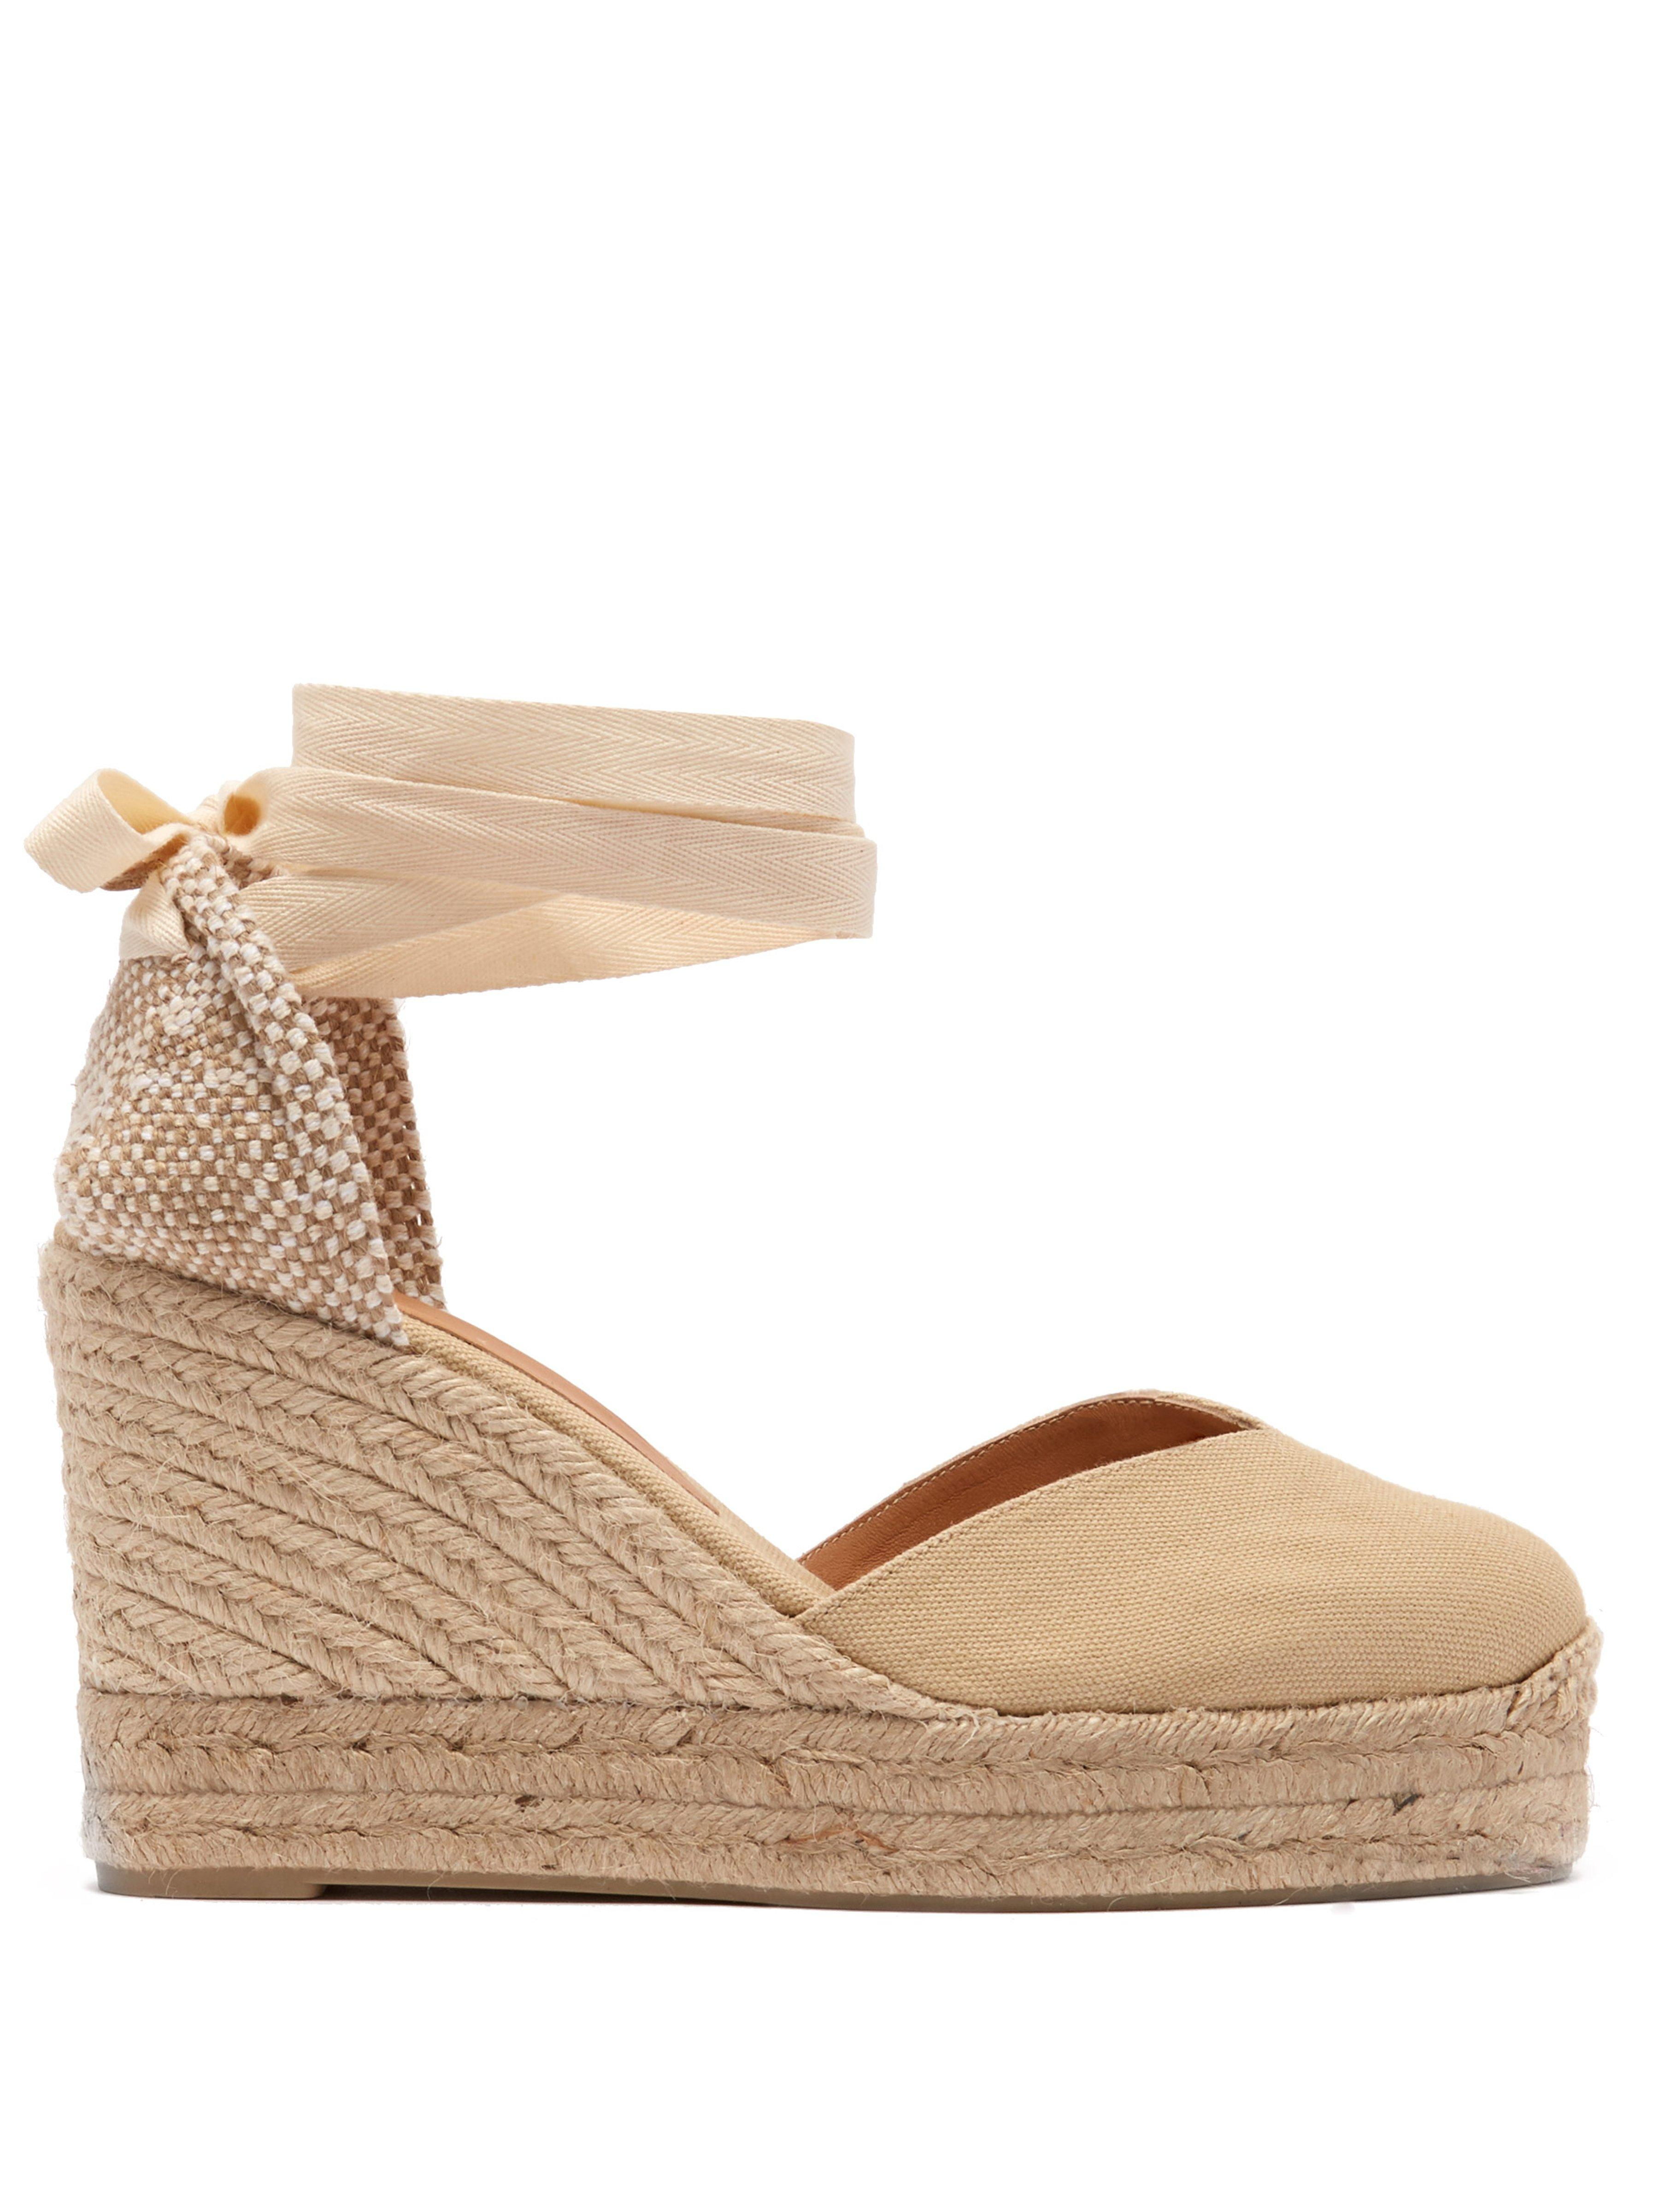 95f30e5d9dc Castaner Chiara 80 Canvas & Jute Espadrille Wedges in Natural - Lyst